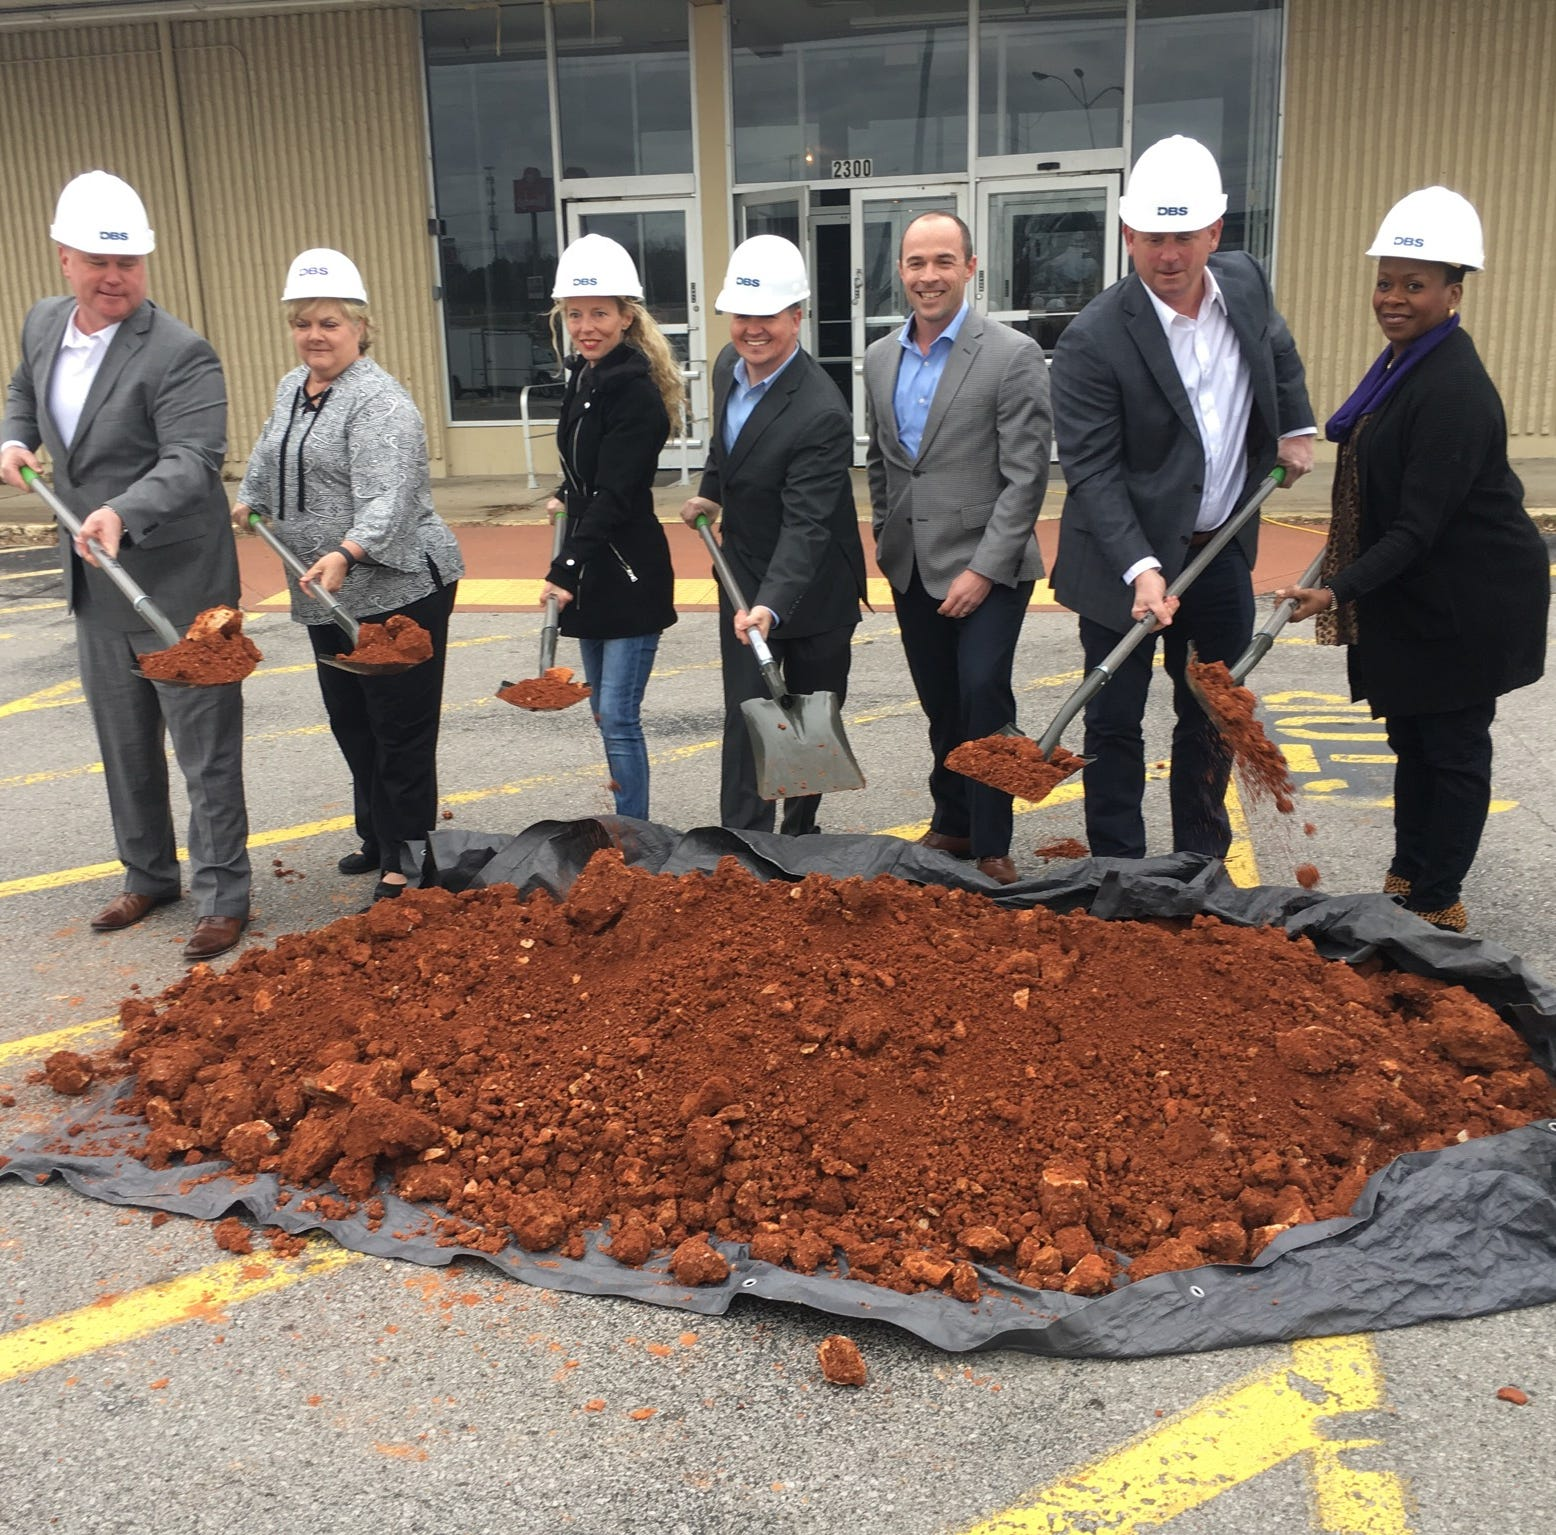 Ground officially broken to revive Clarksville's Madison Street Kmart property